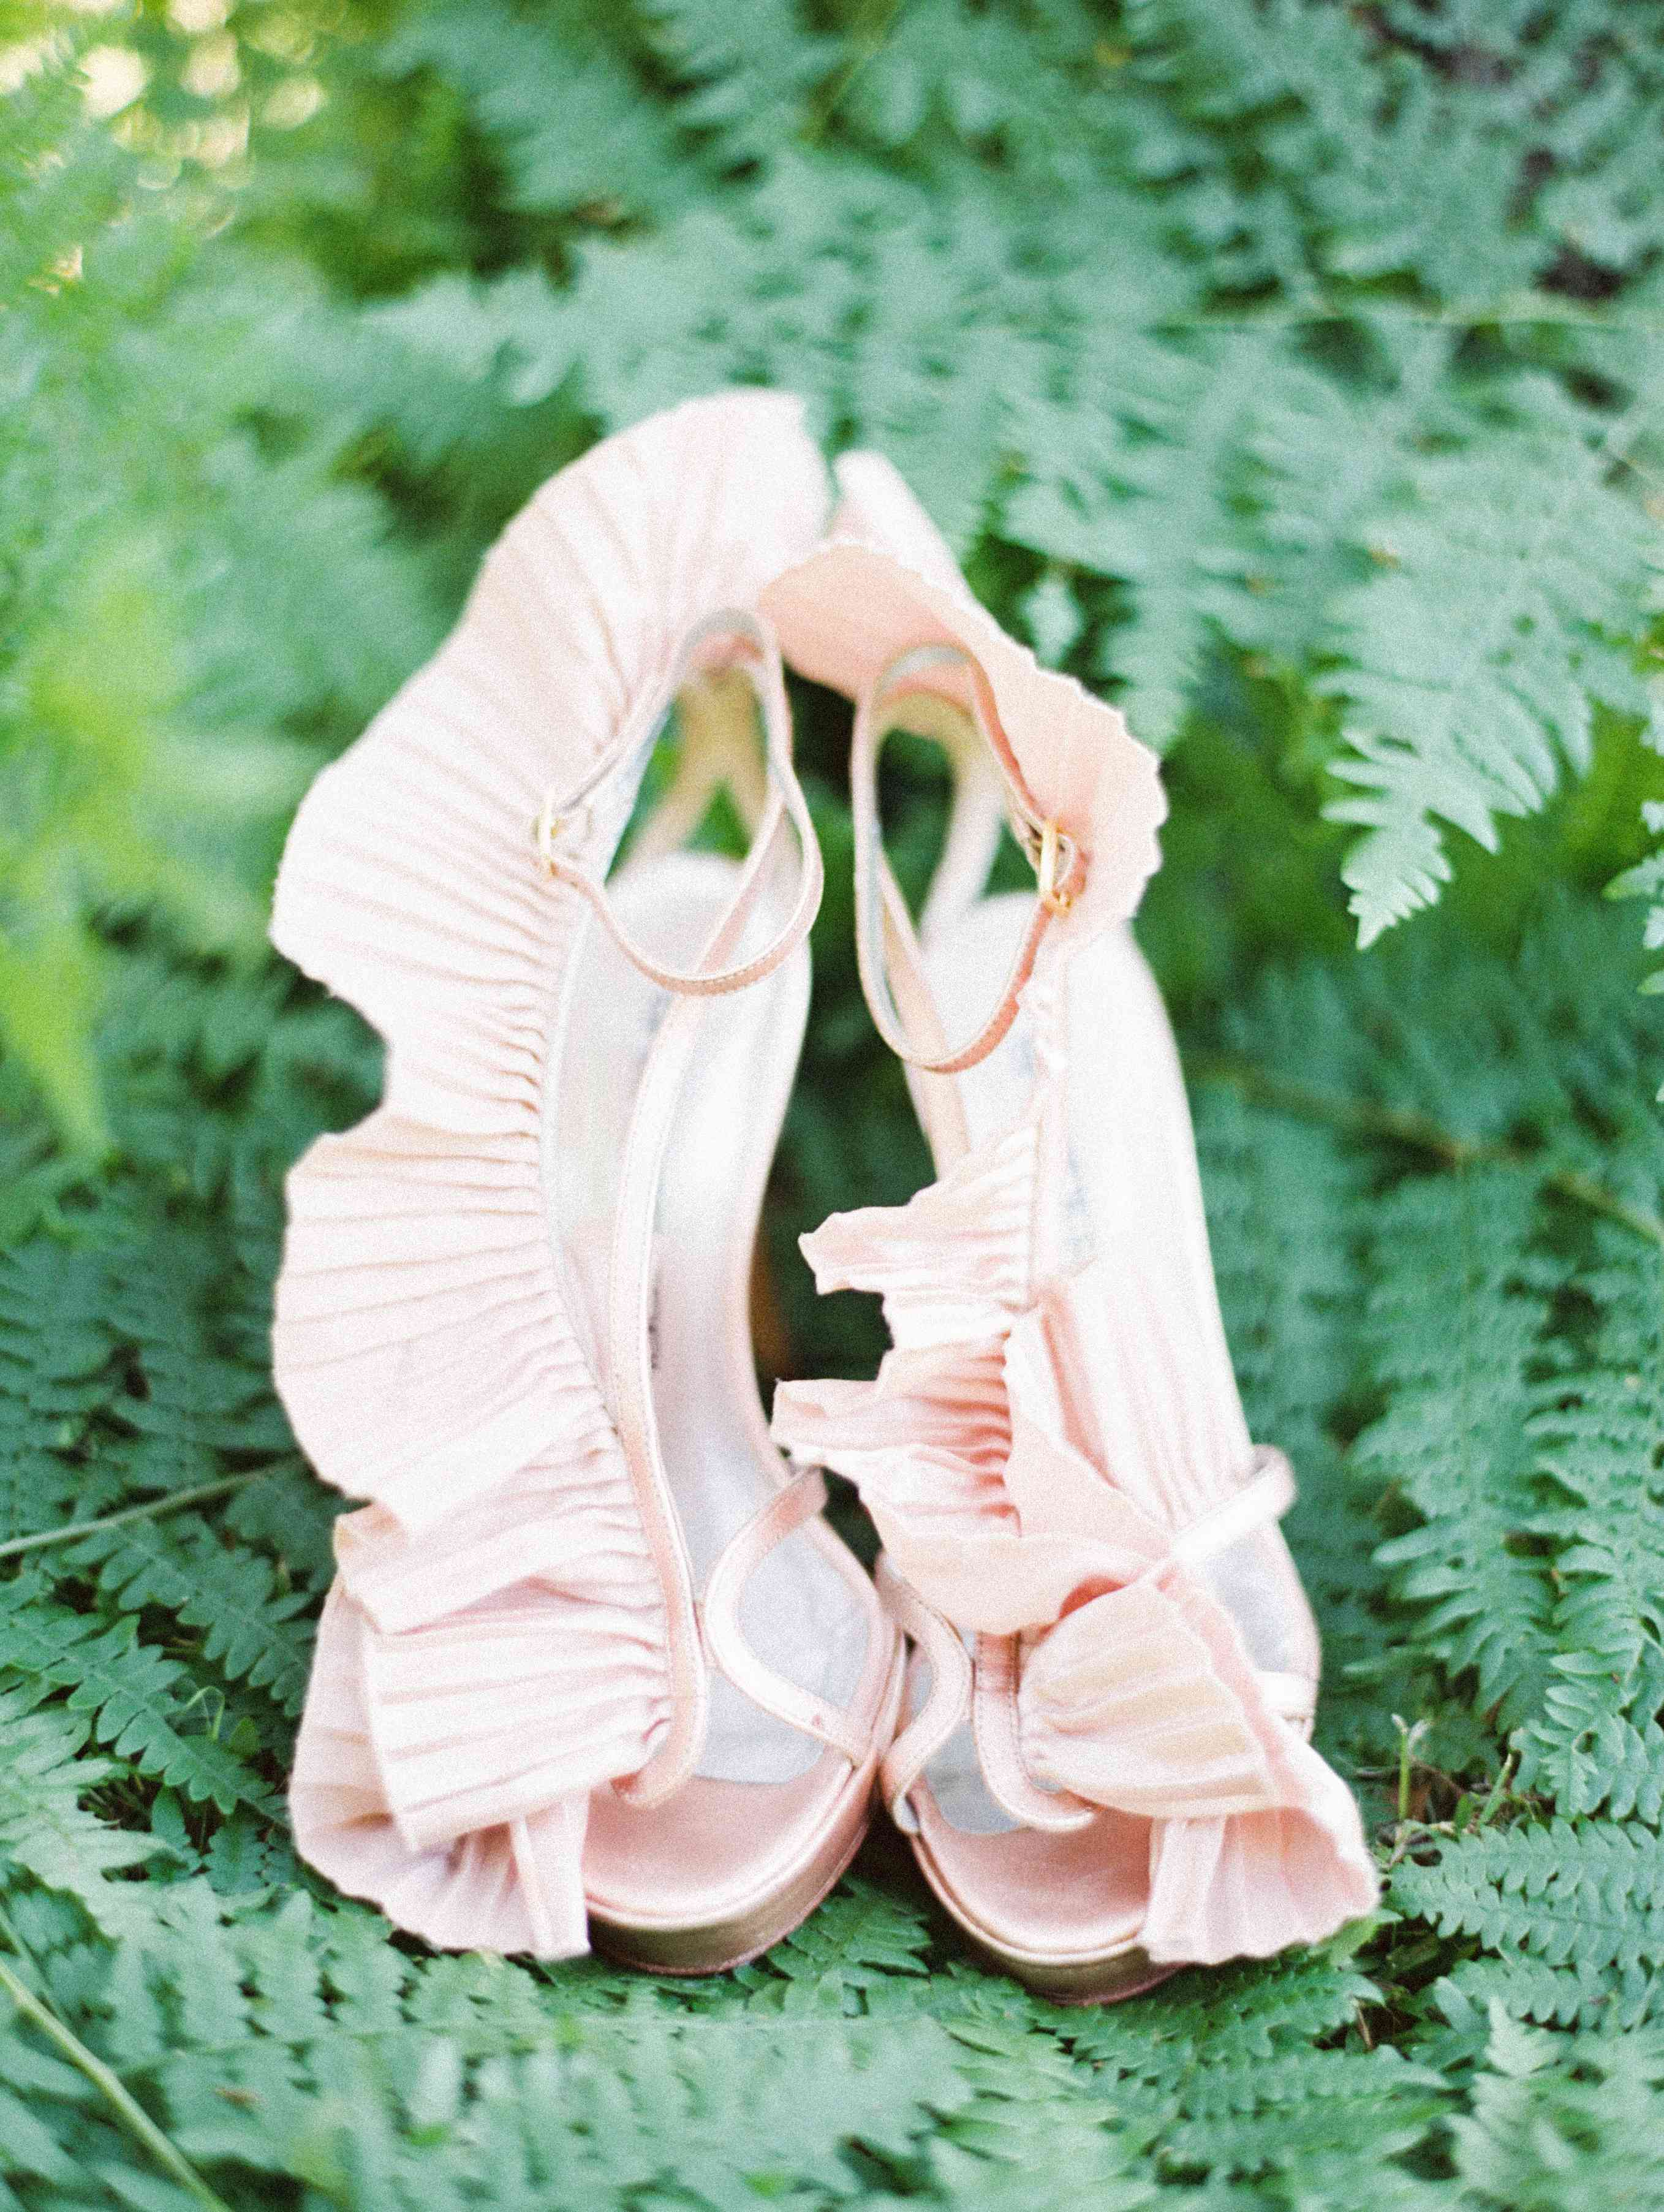 A pair of delicate pink heels with ruffled fabric.